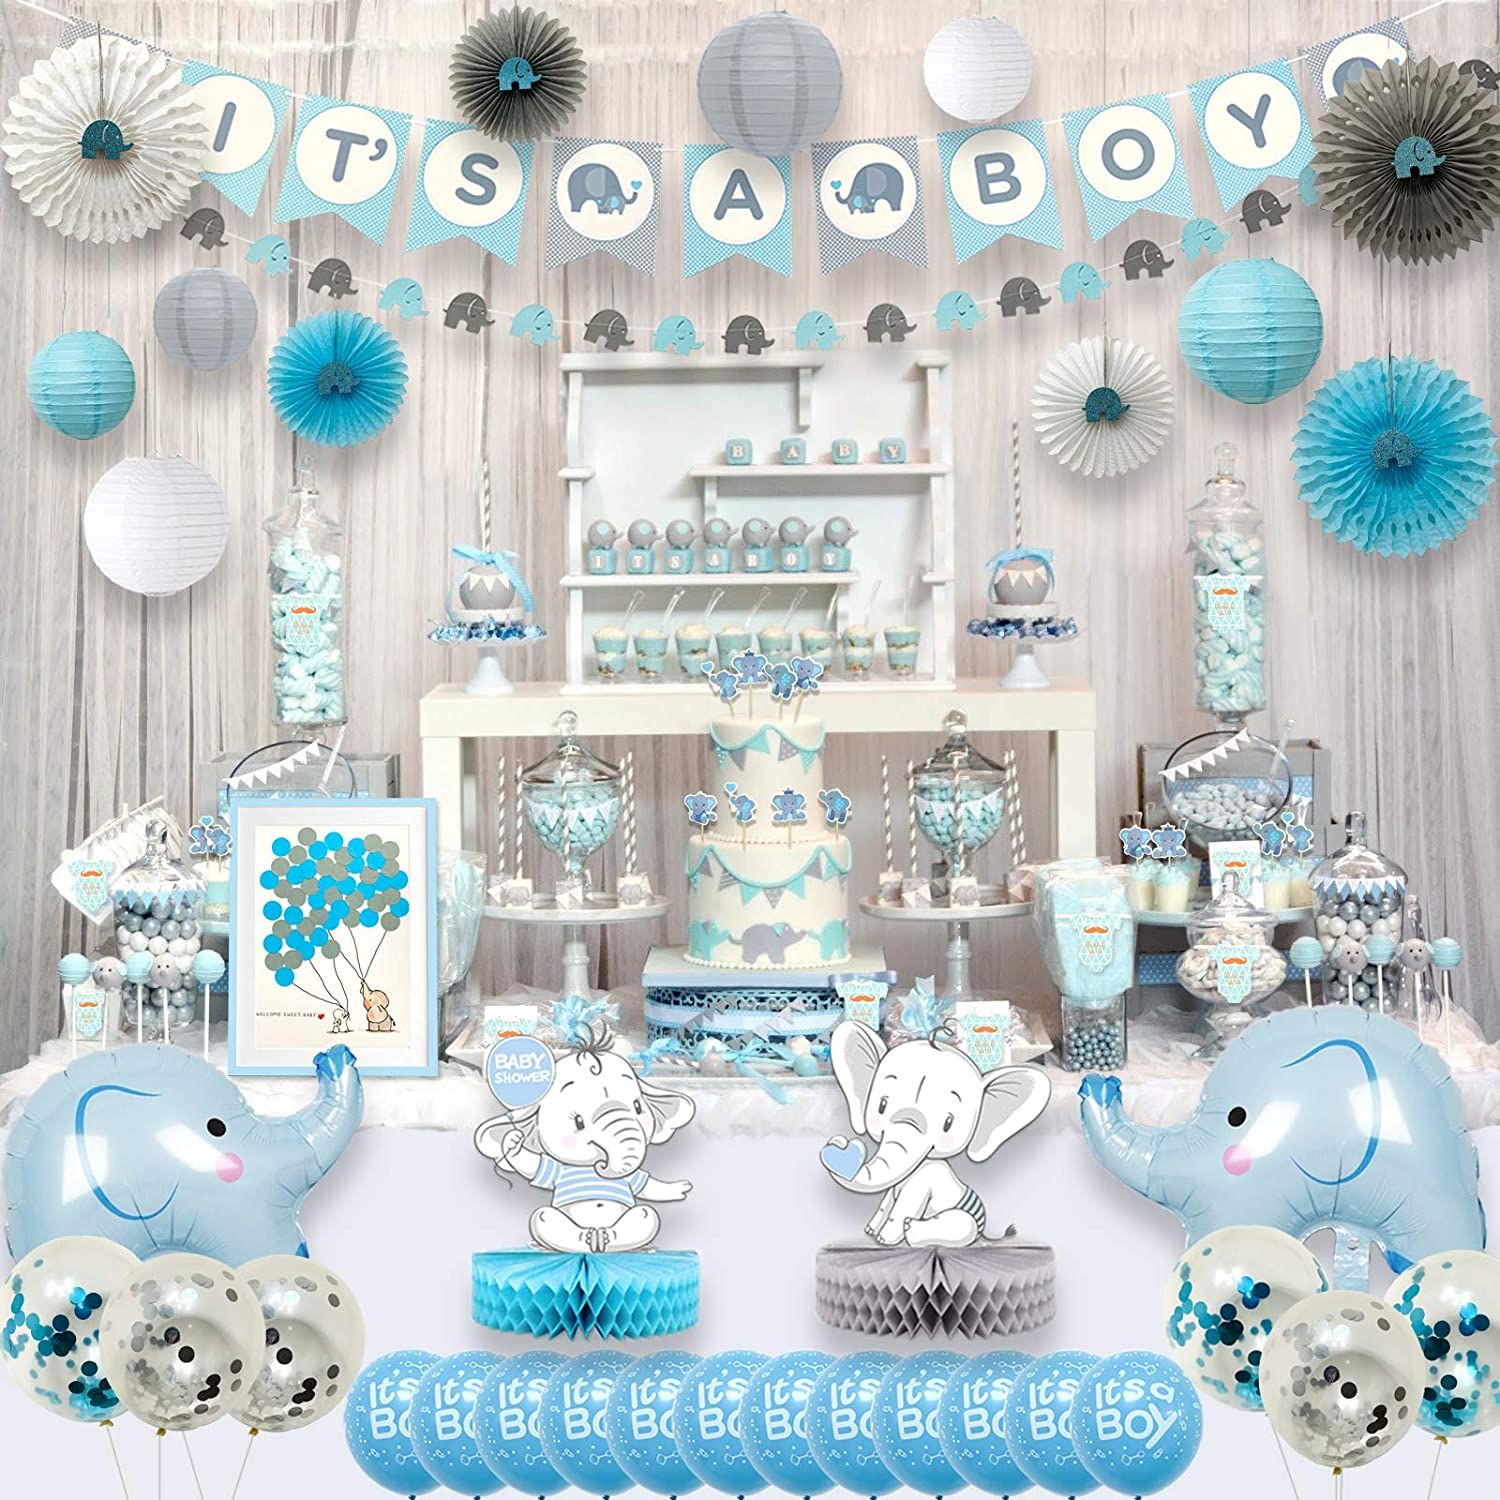 Buhloonz Blue Elephant Baby Shower Decorations for Boy Party Supplies Kit  with Guest Book It's a boy Banner Garland Paper Fans Lanterns Cake Toppers  ...